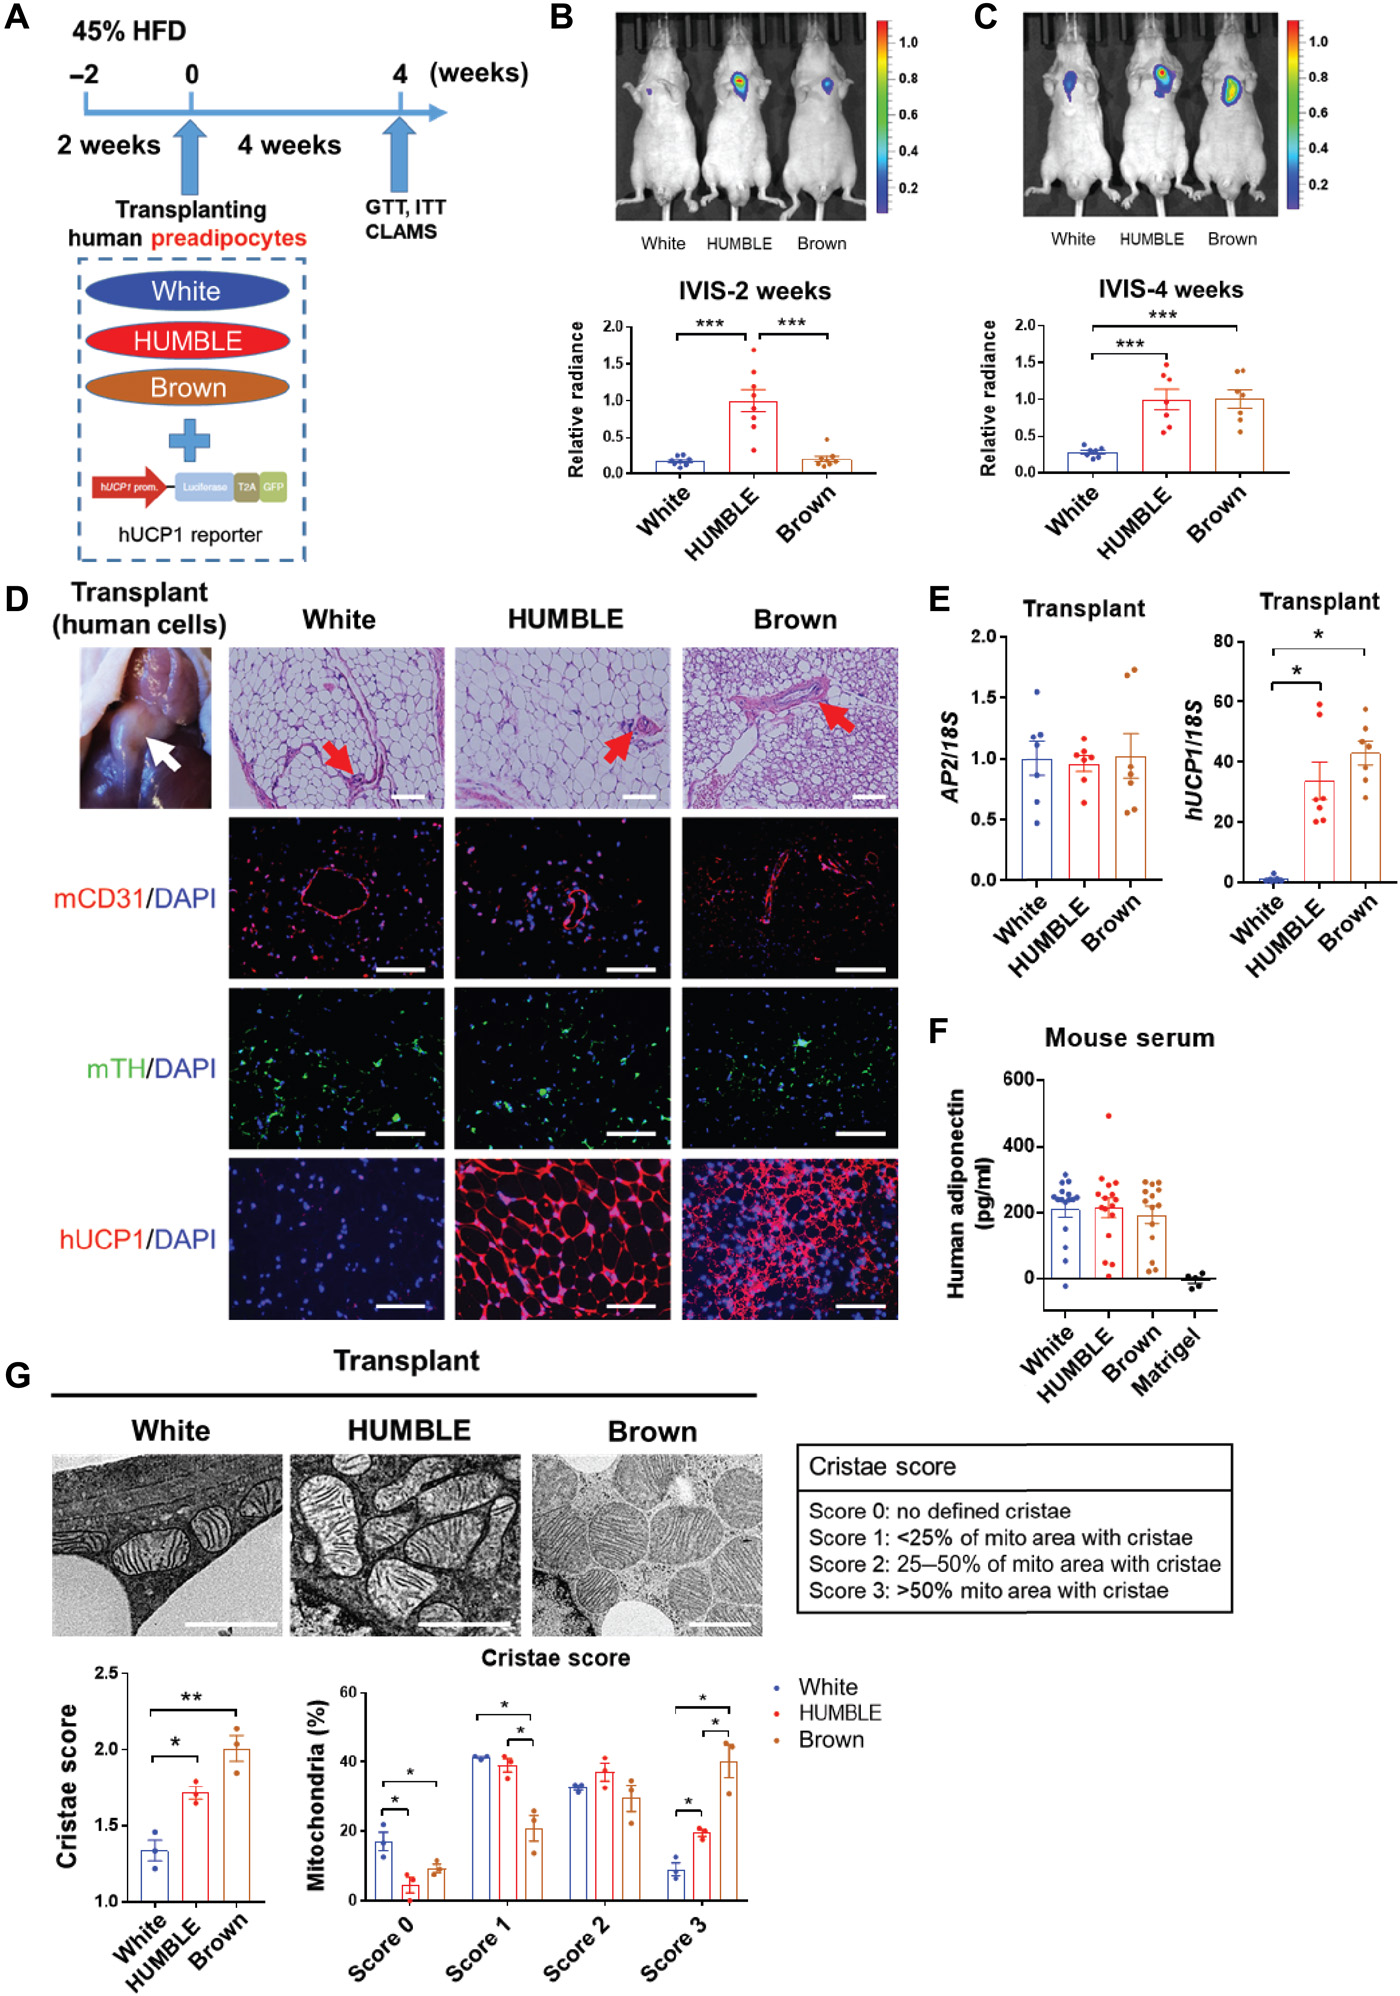 CRISPR-engineered human brown-like adipocytes prevent diet-induced obesity and ameliorate metabolic syndrome in mice